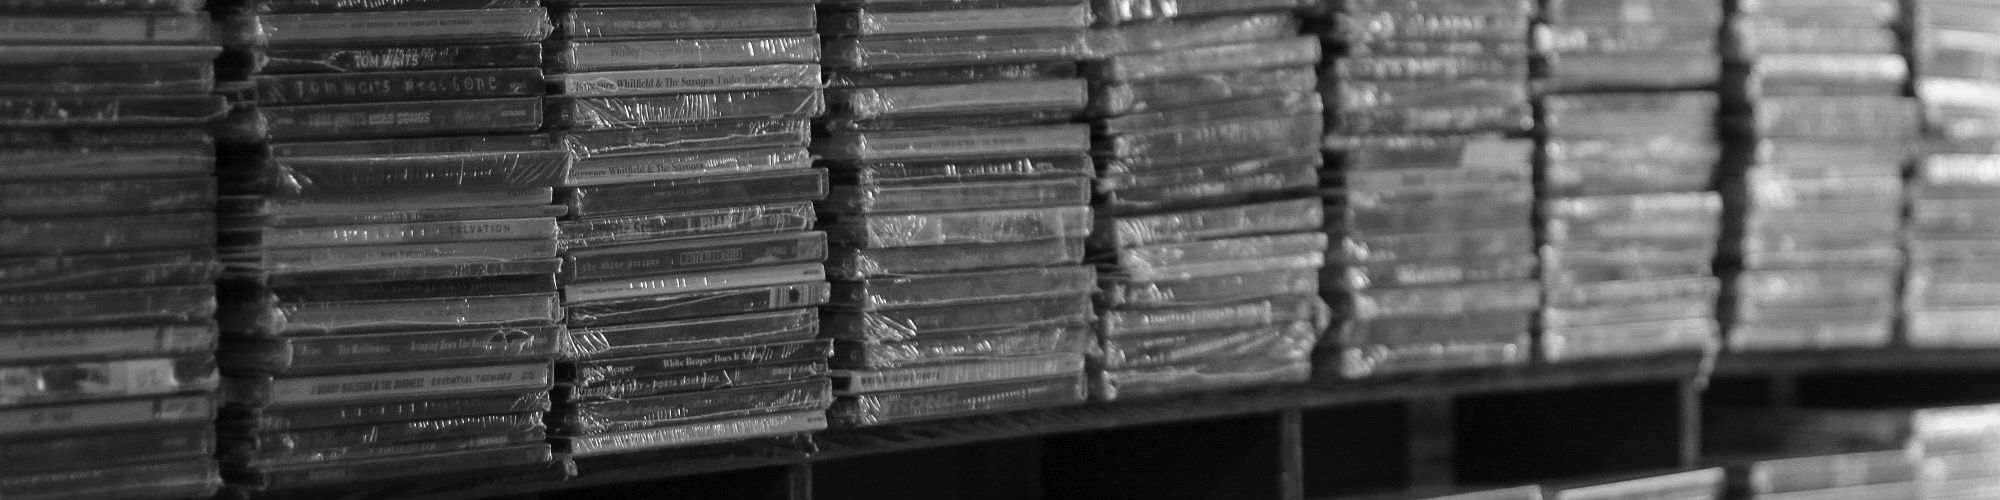 A huge shelf of CDs, ready for distribution